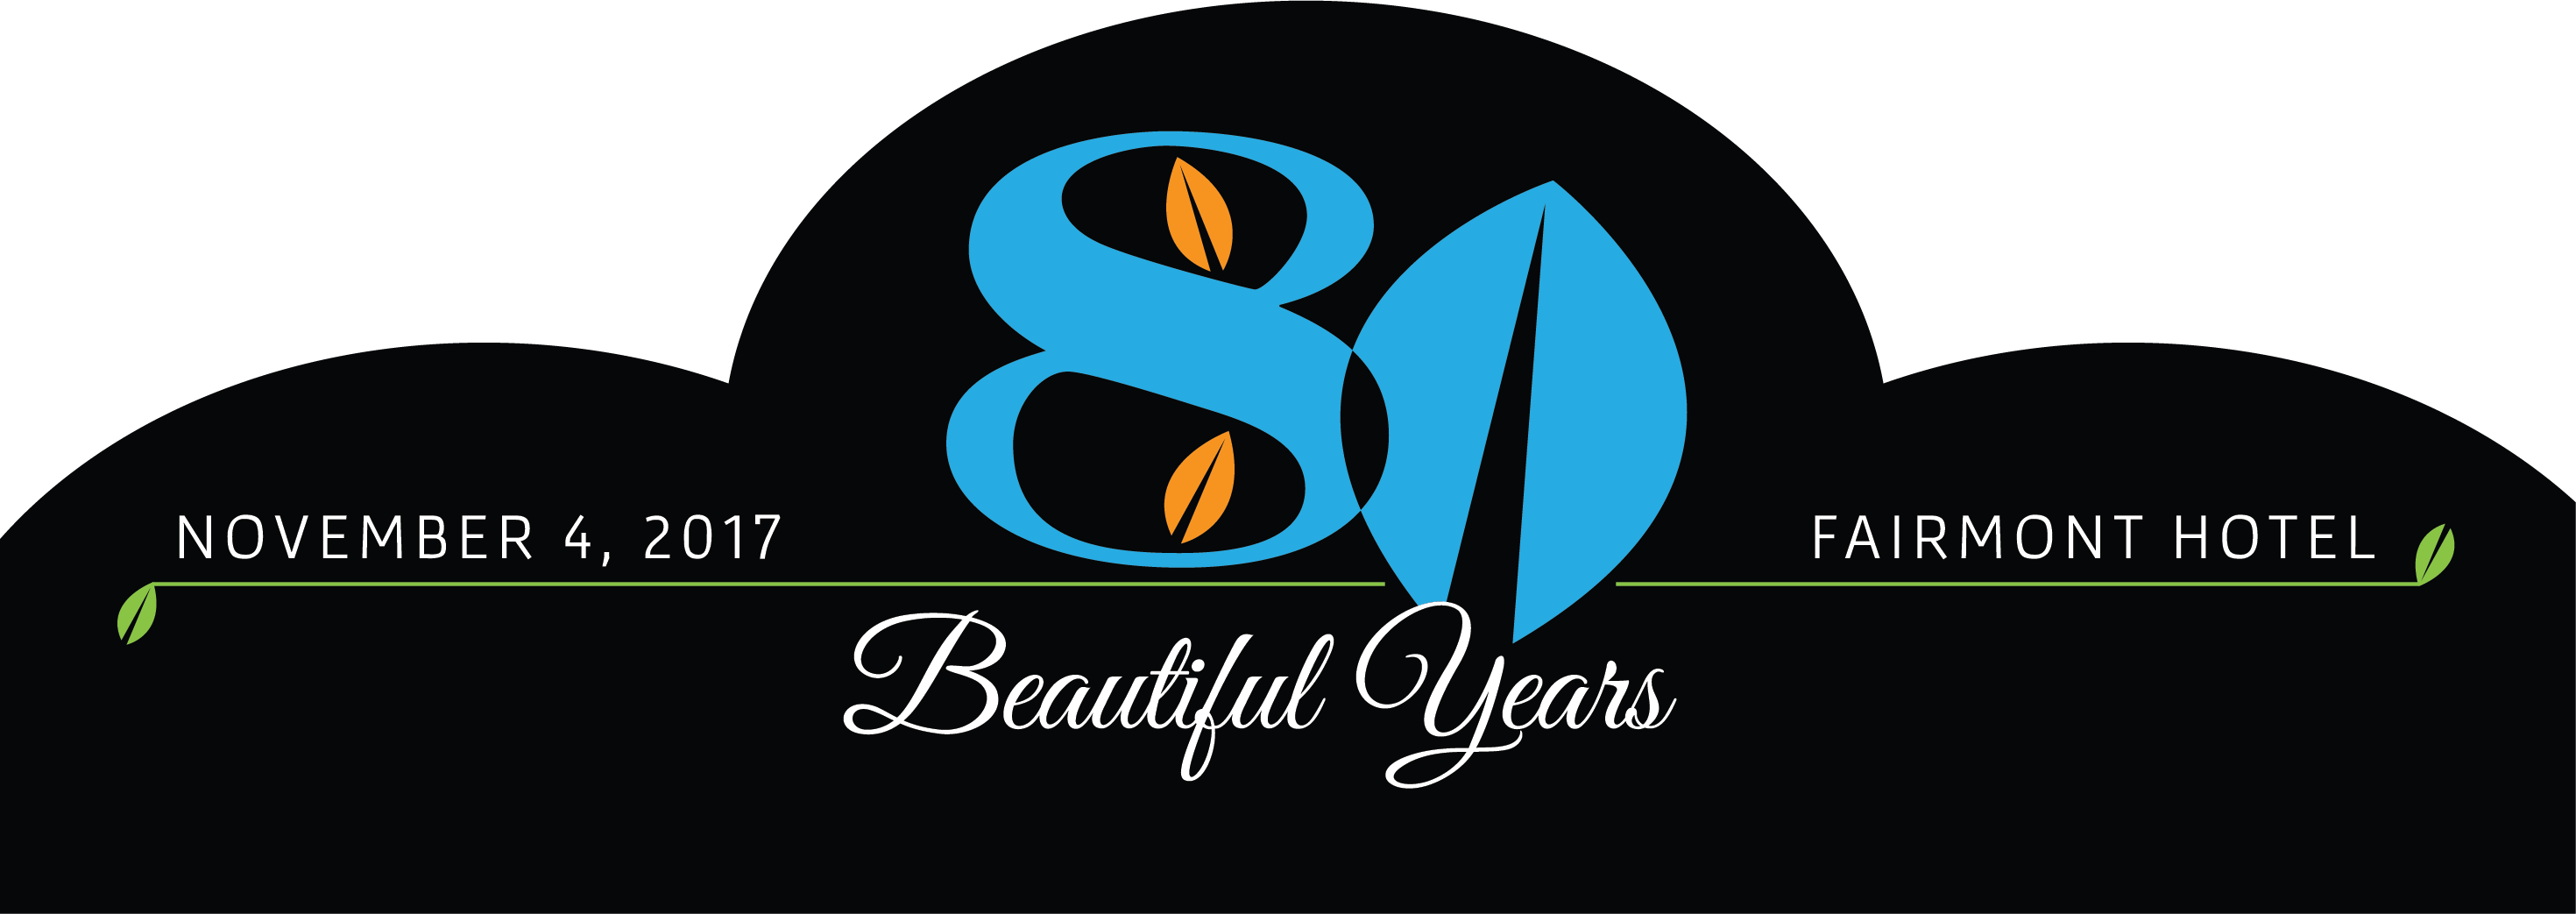 80 Beautiful Years Gala